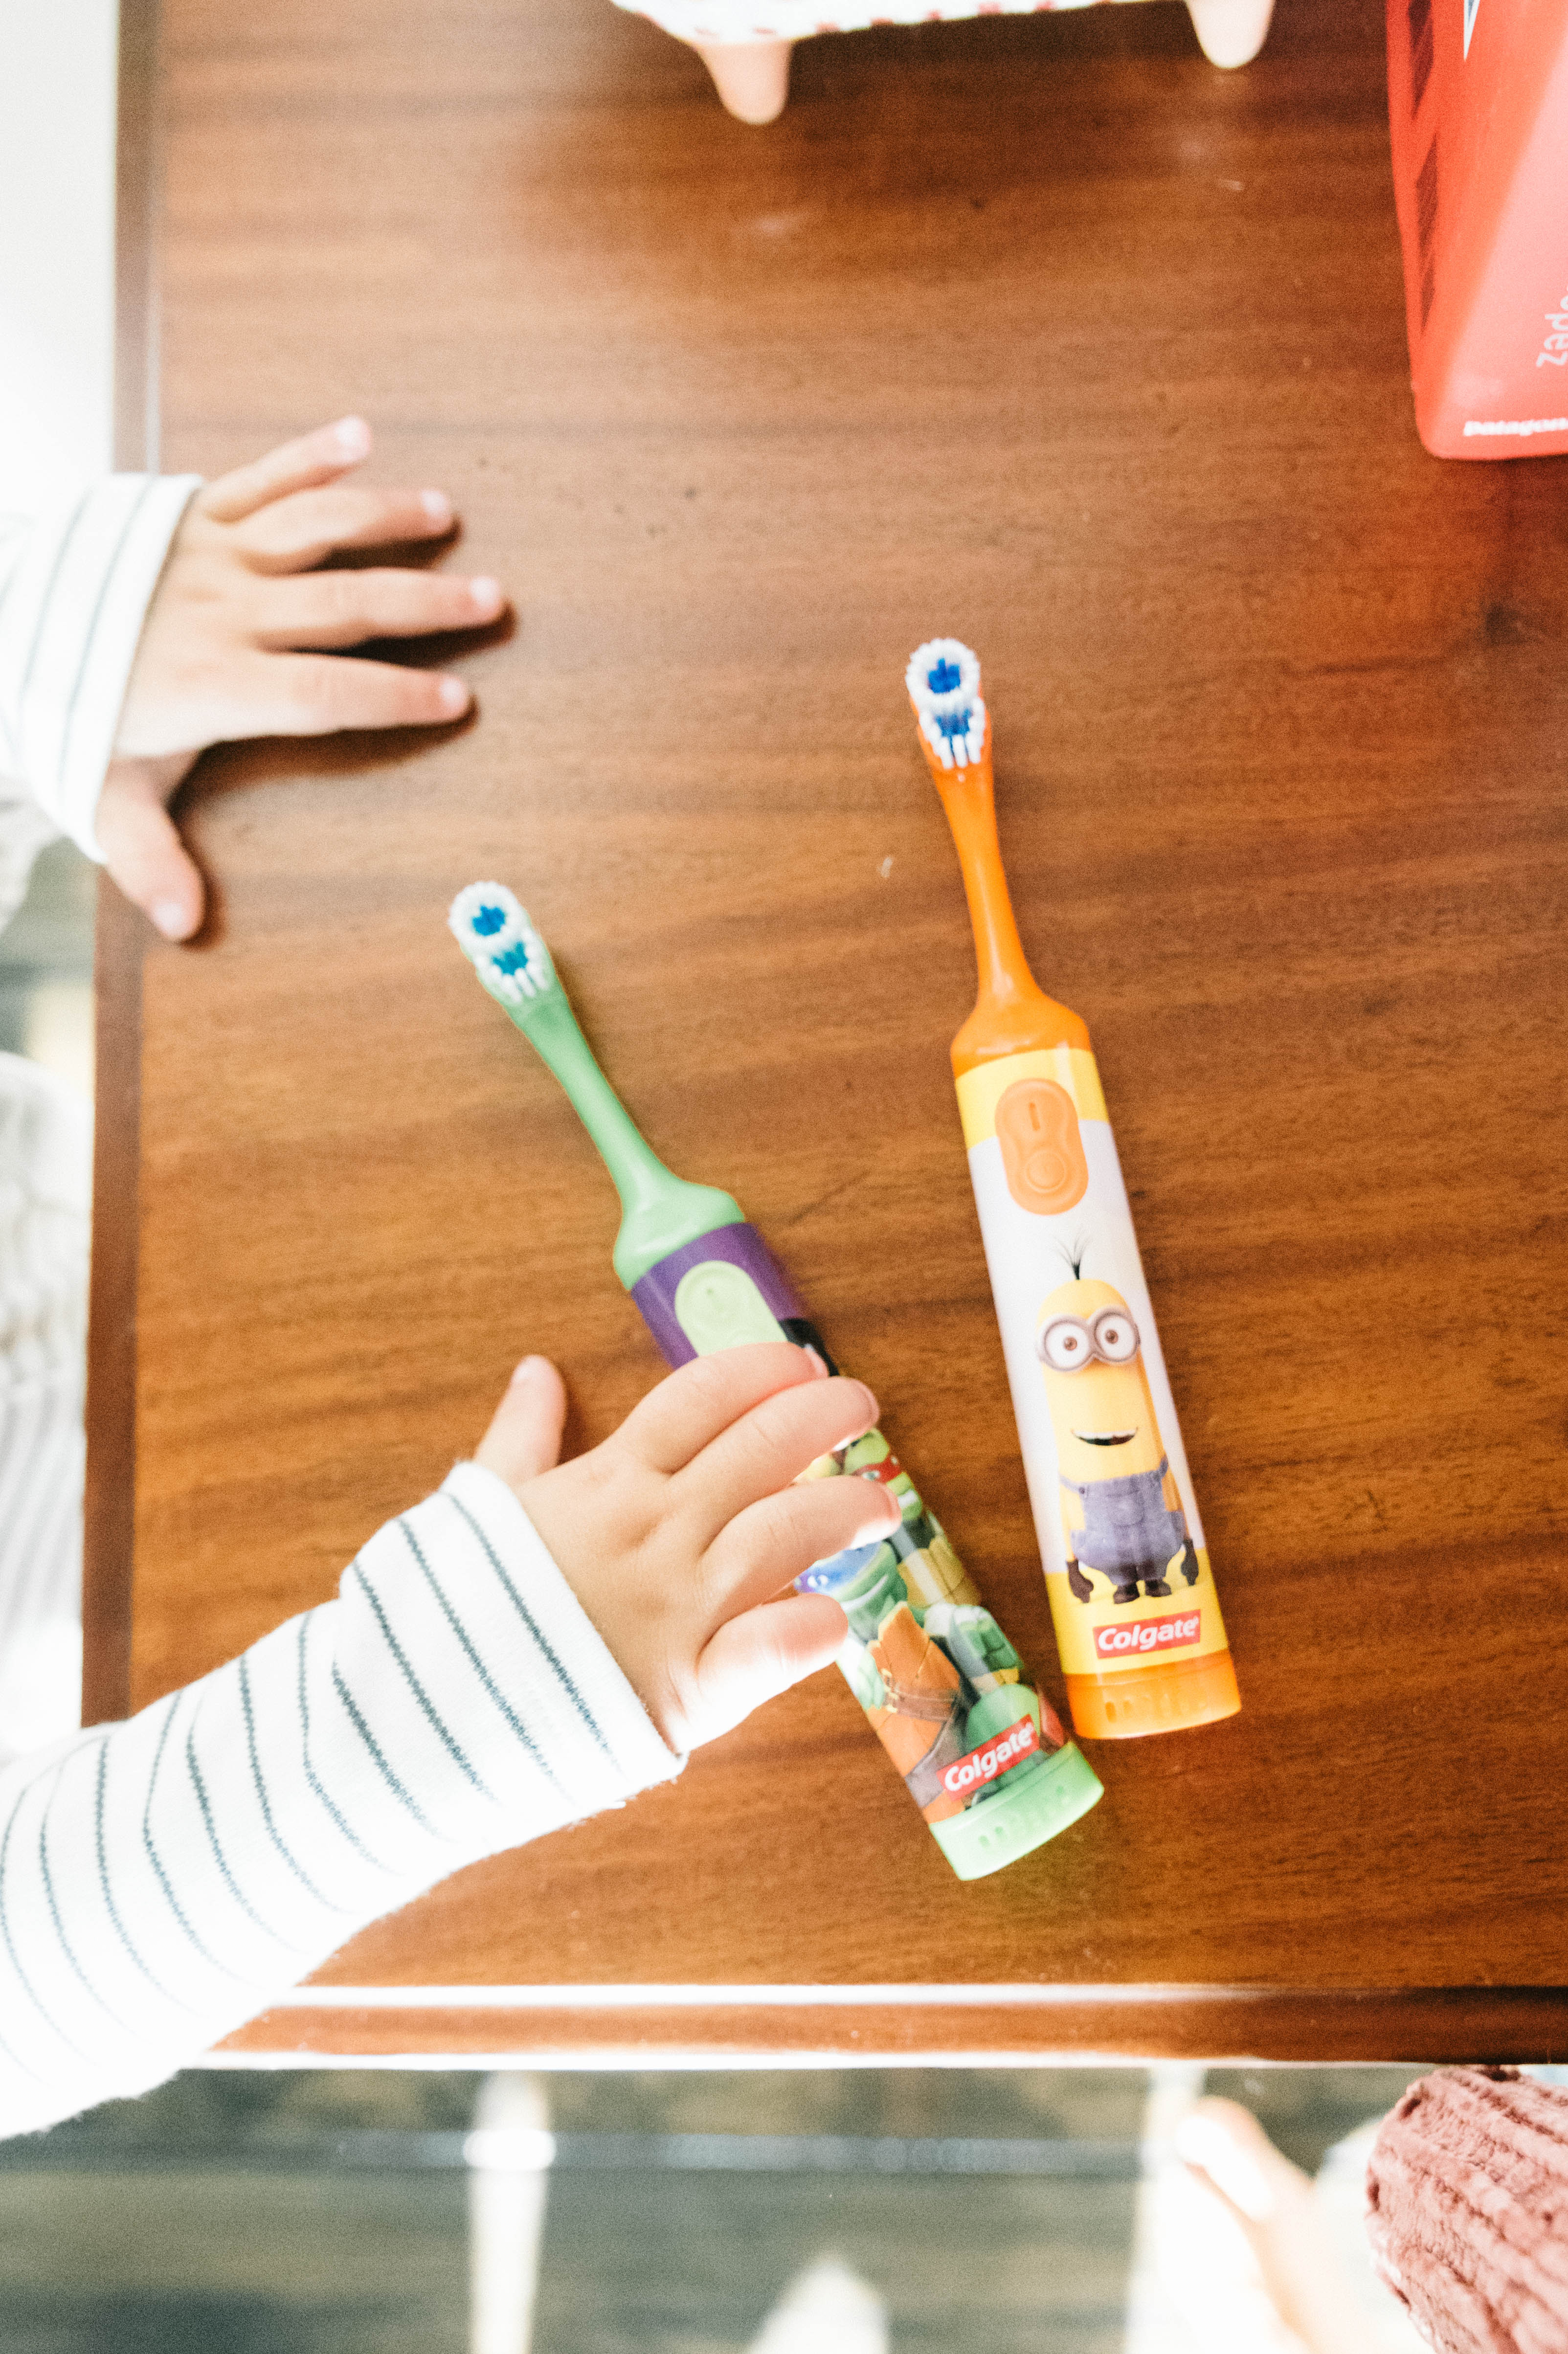 The Coolest Toothbrush Your Bathroom Has Ever Seen